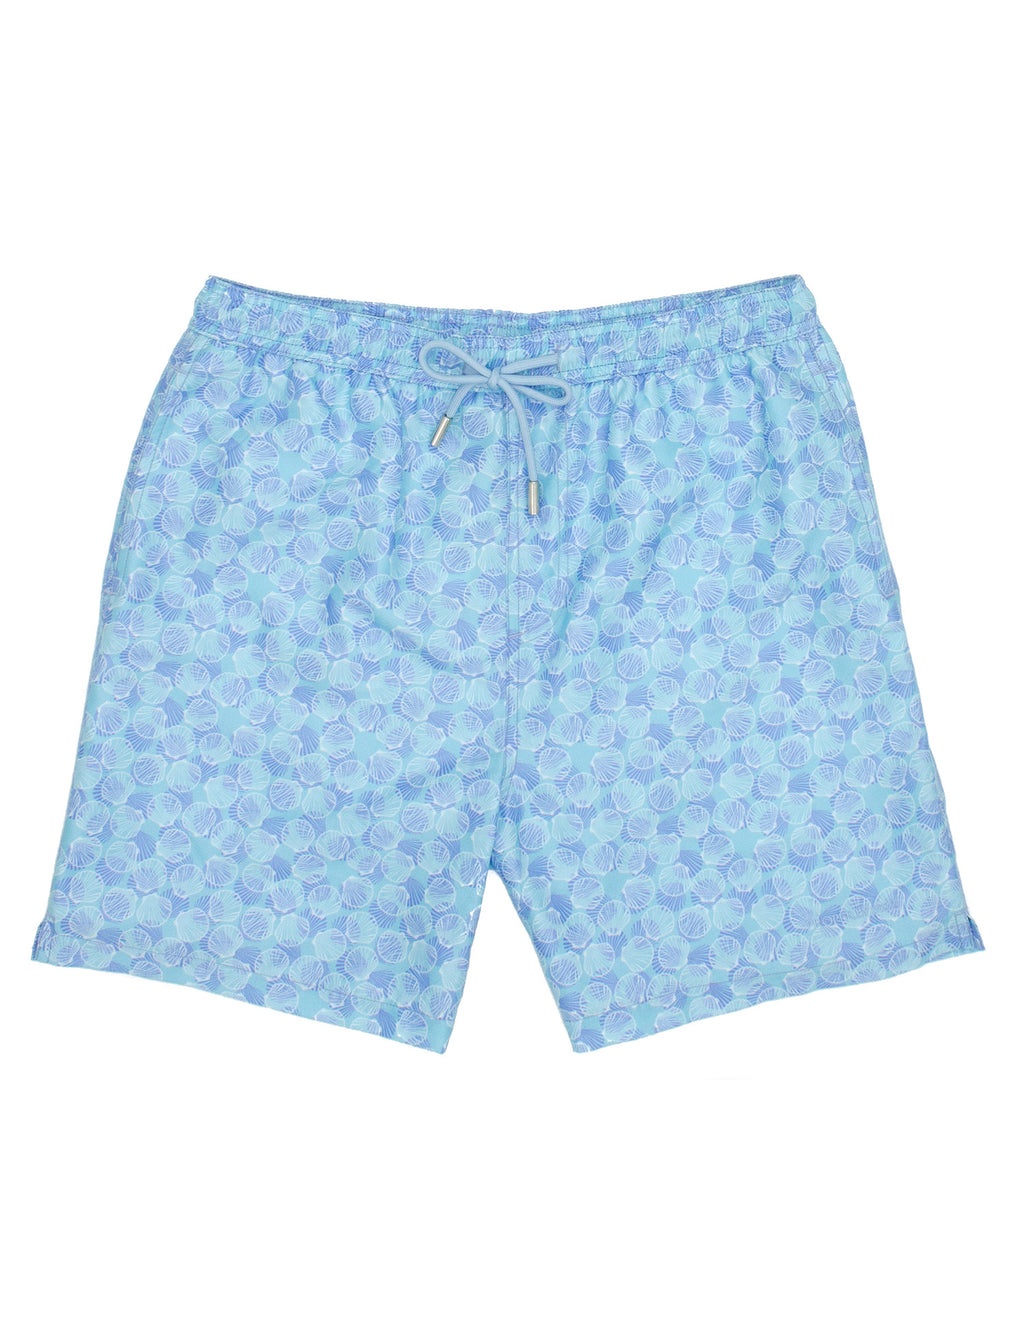 Properly Tied Boys Swim Trunks - Seashell